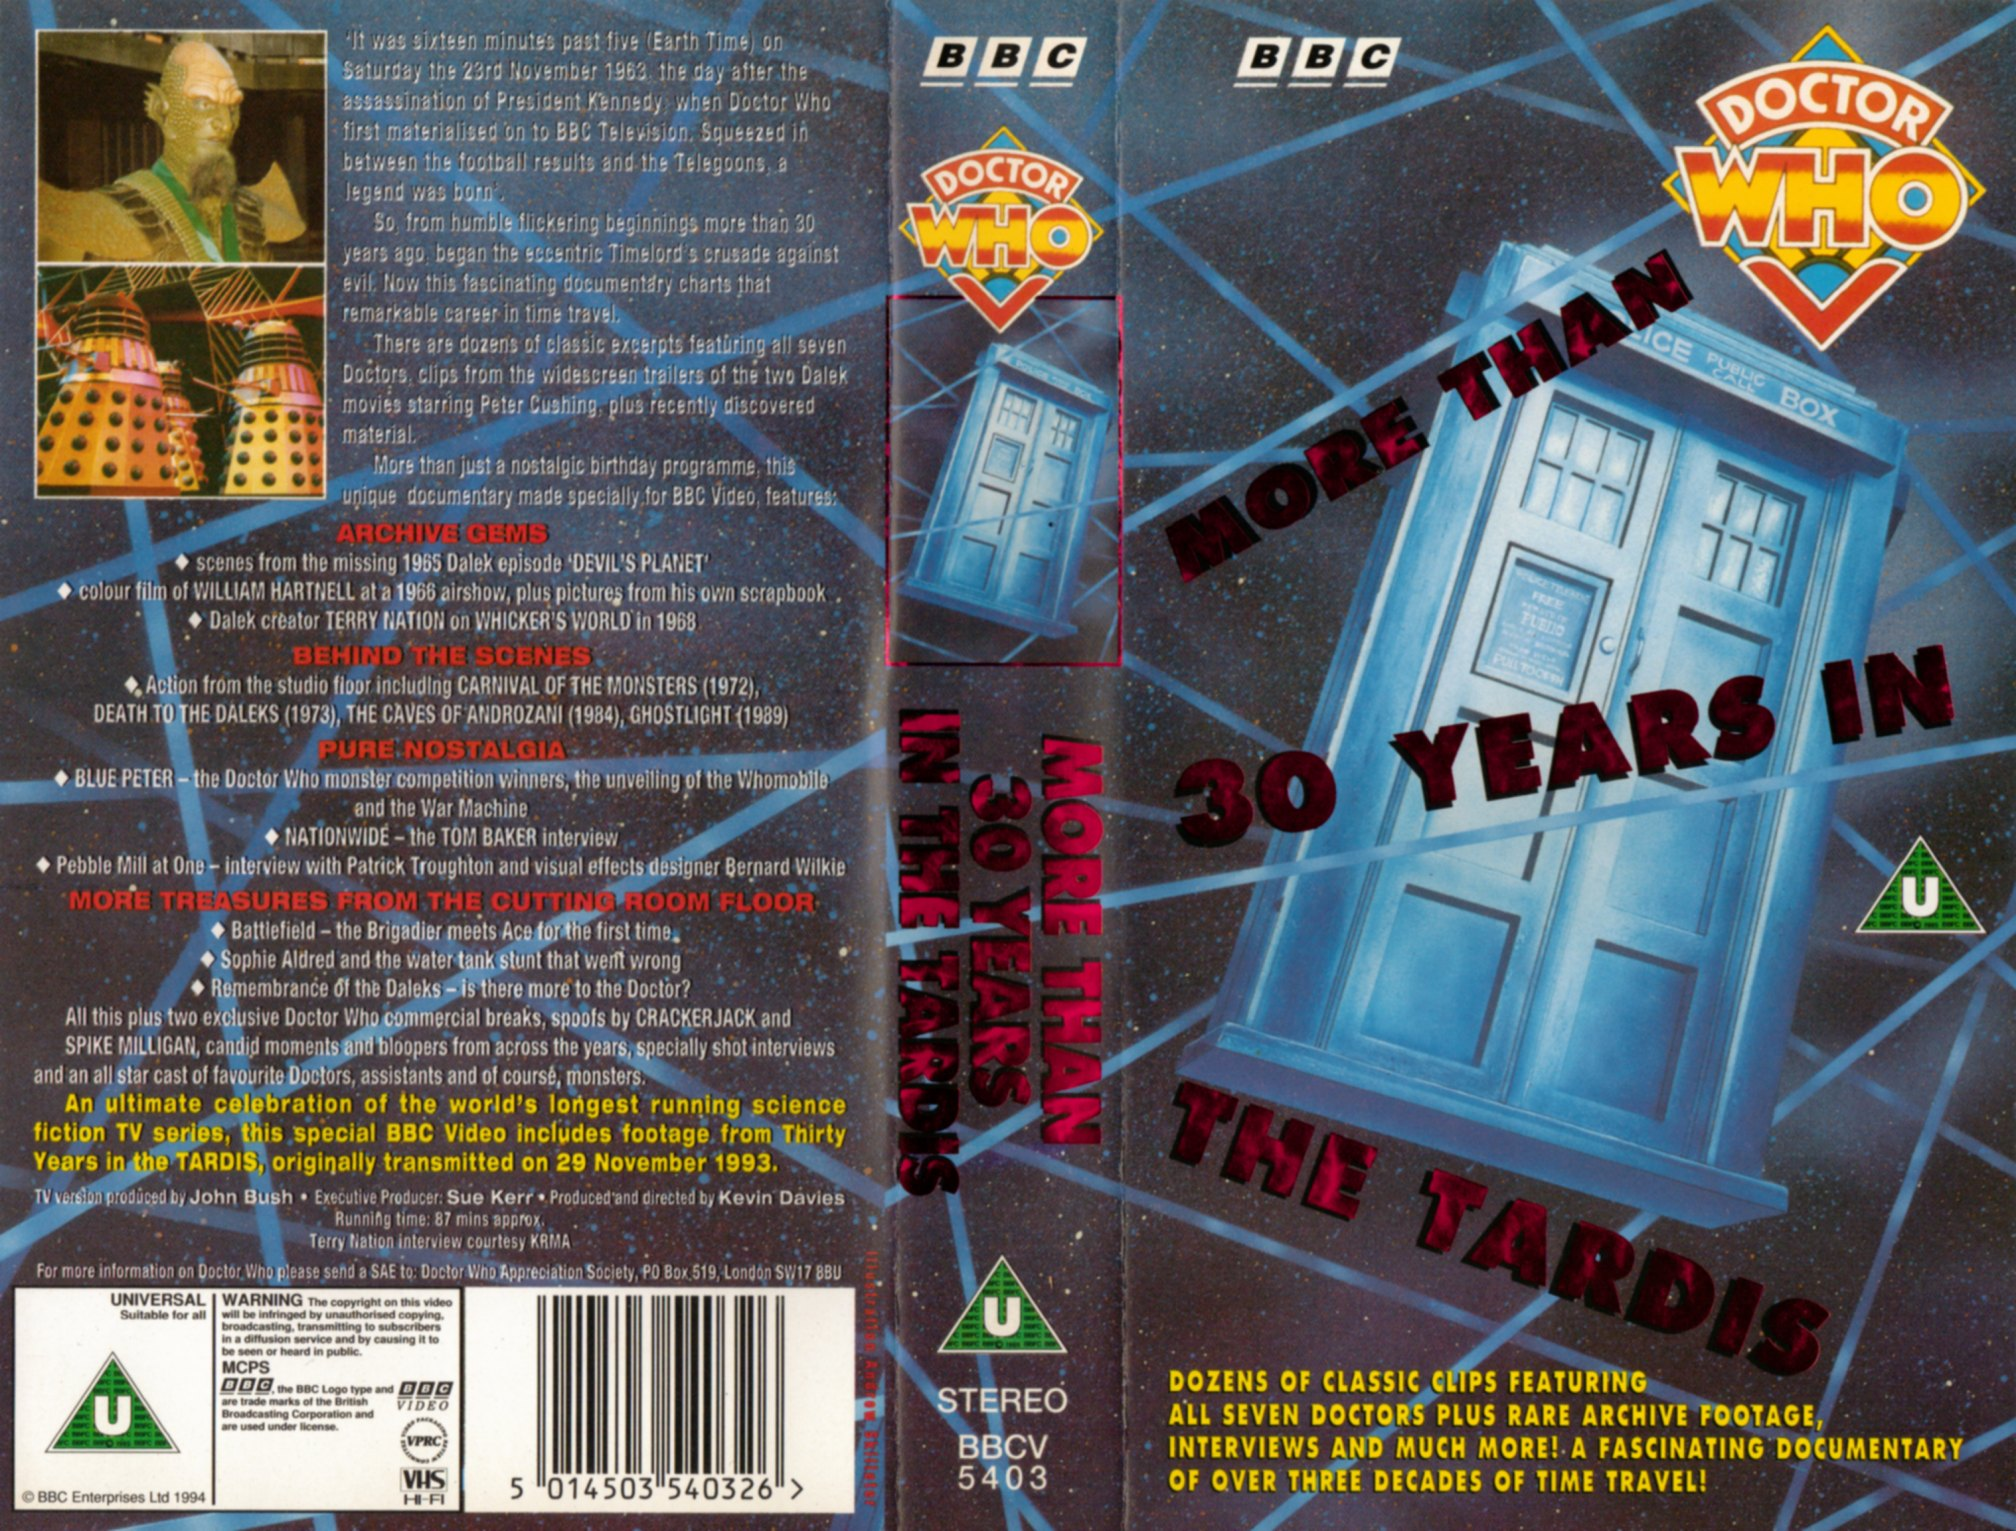 More than 30 Years in the TARDIS